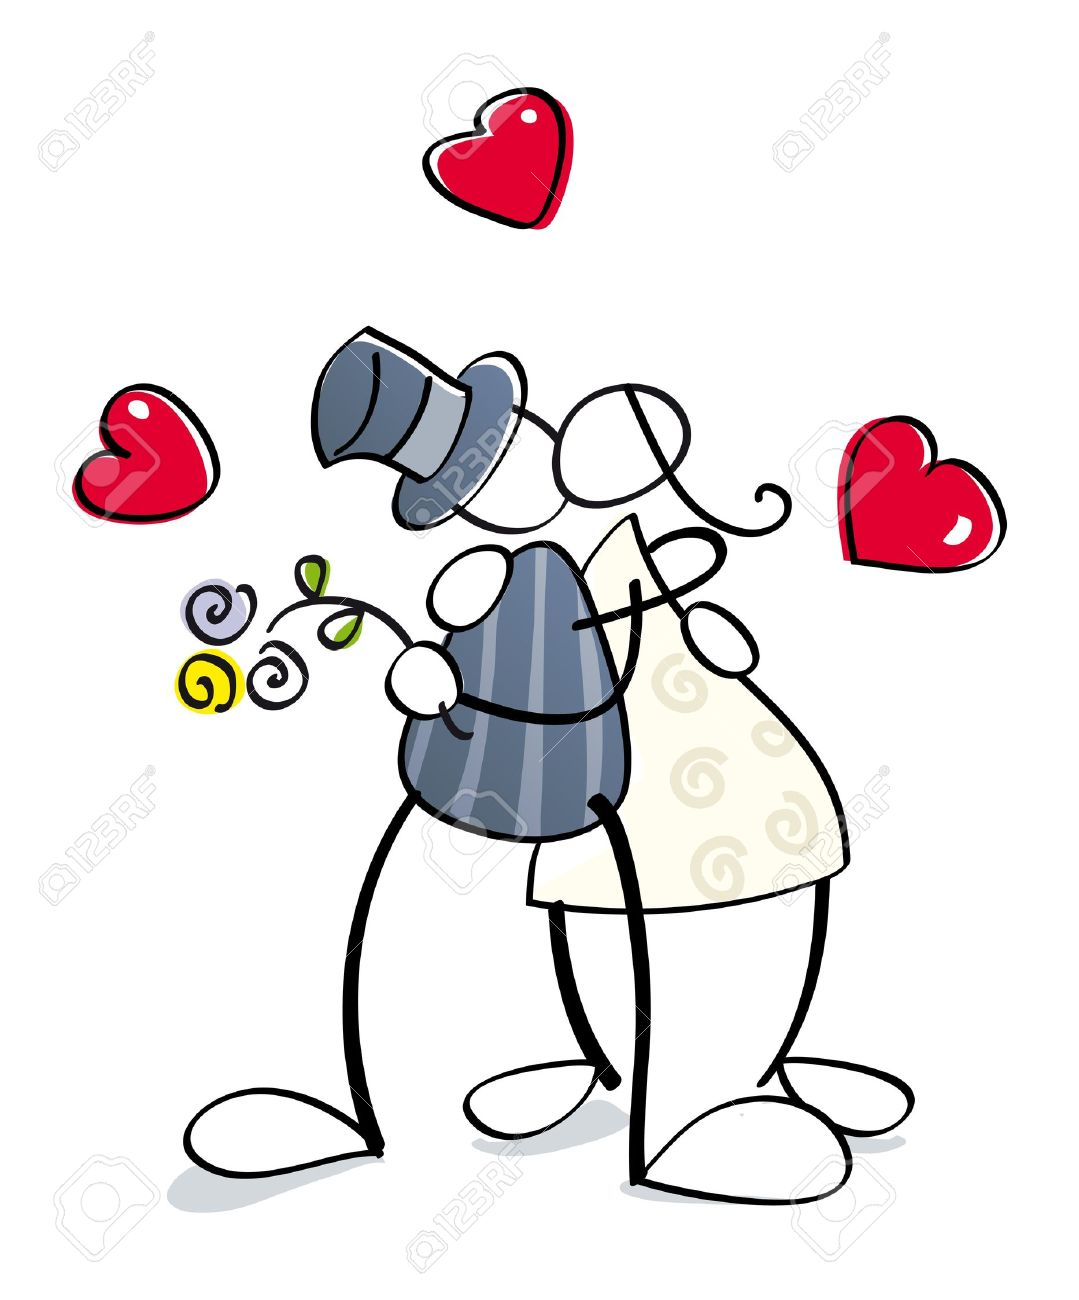 clipart mariage humour 4 clipart station rh clipartstation com clipart mariage champetre gratuit clipart mariage champetre gratuit